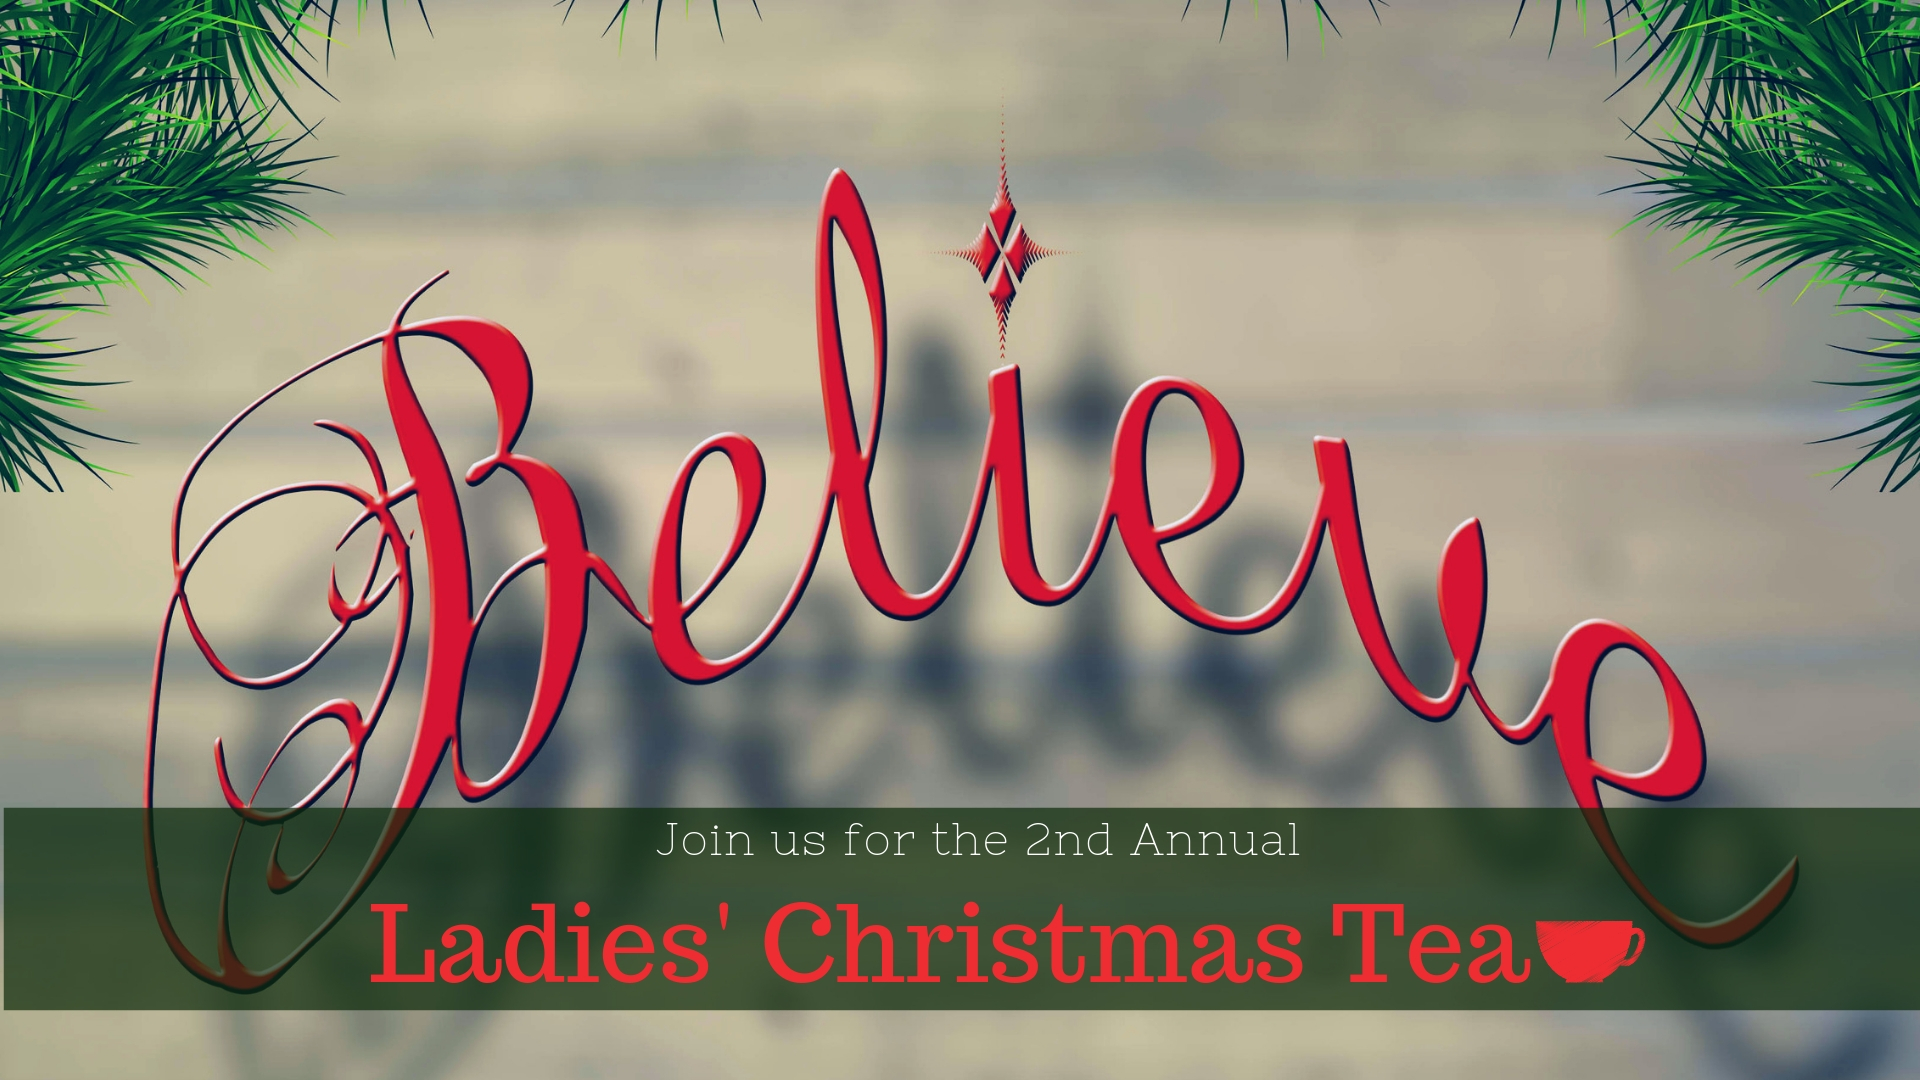 2nd Annual Ladies' Christmas Tea